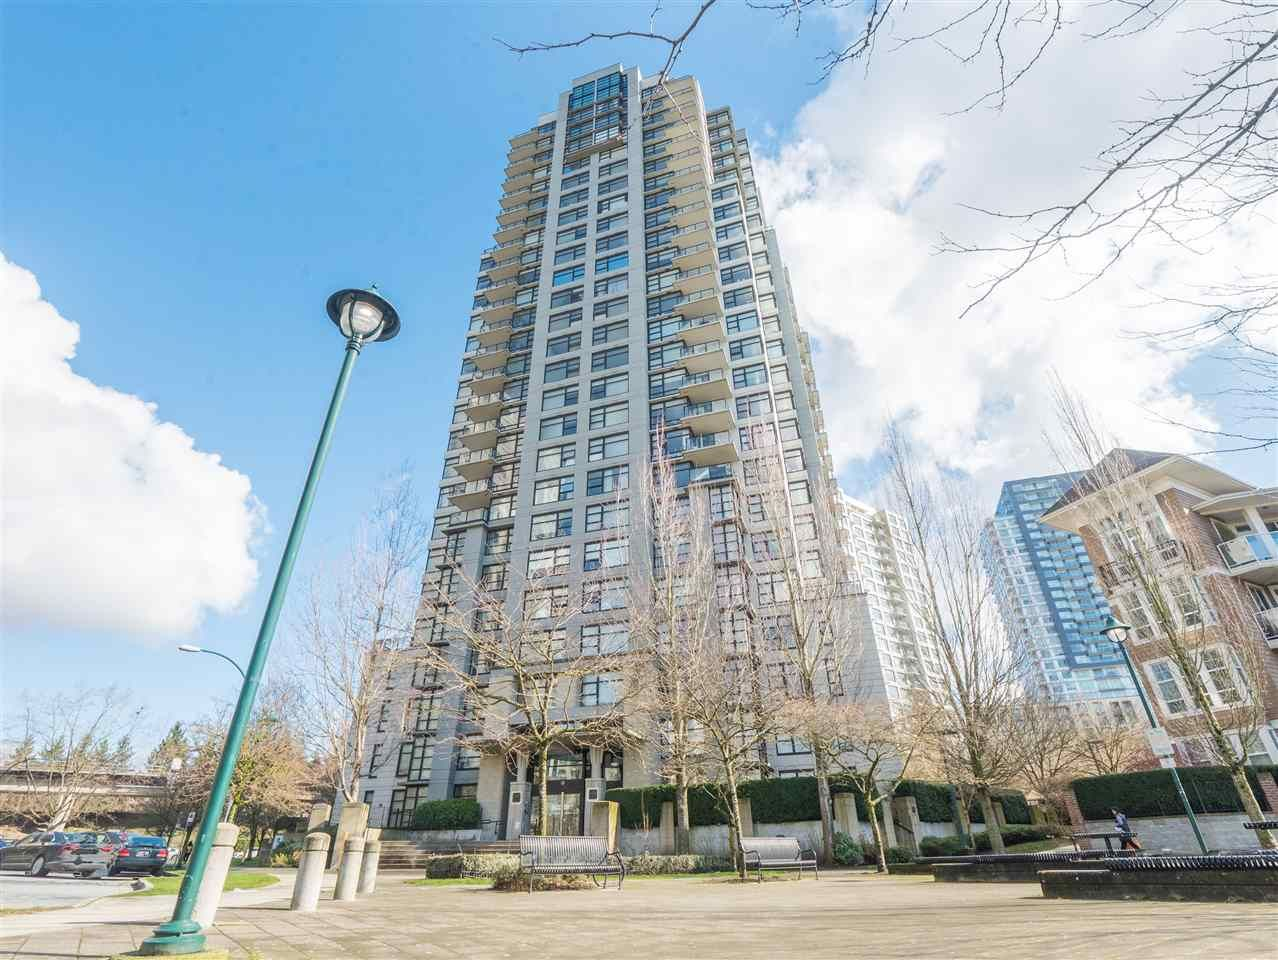 Main Photo: 1708 5380 OBEN STREET in Vancouver: Collingwood VE Condo for sale (Vancouver East)  : MLS®# R2445259